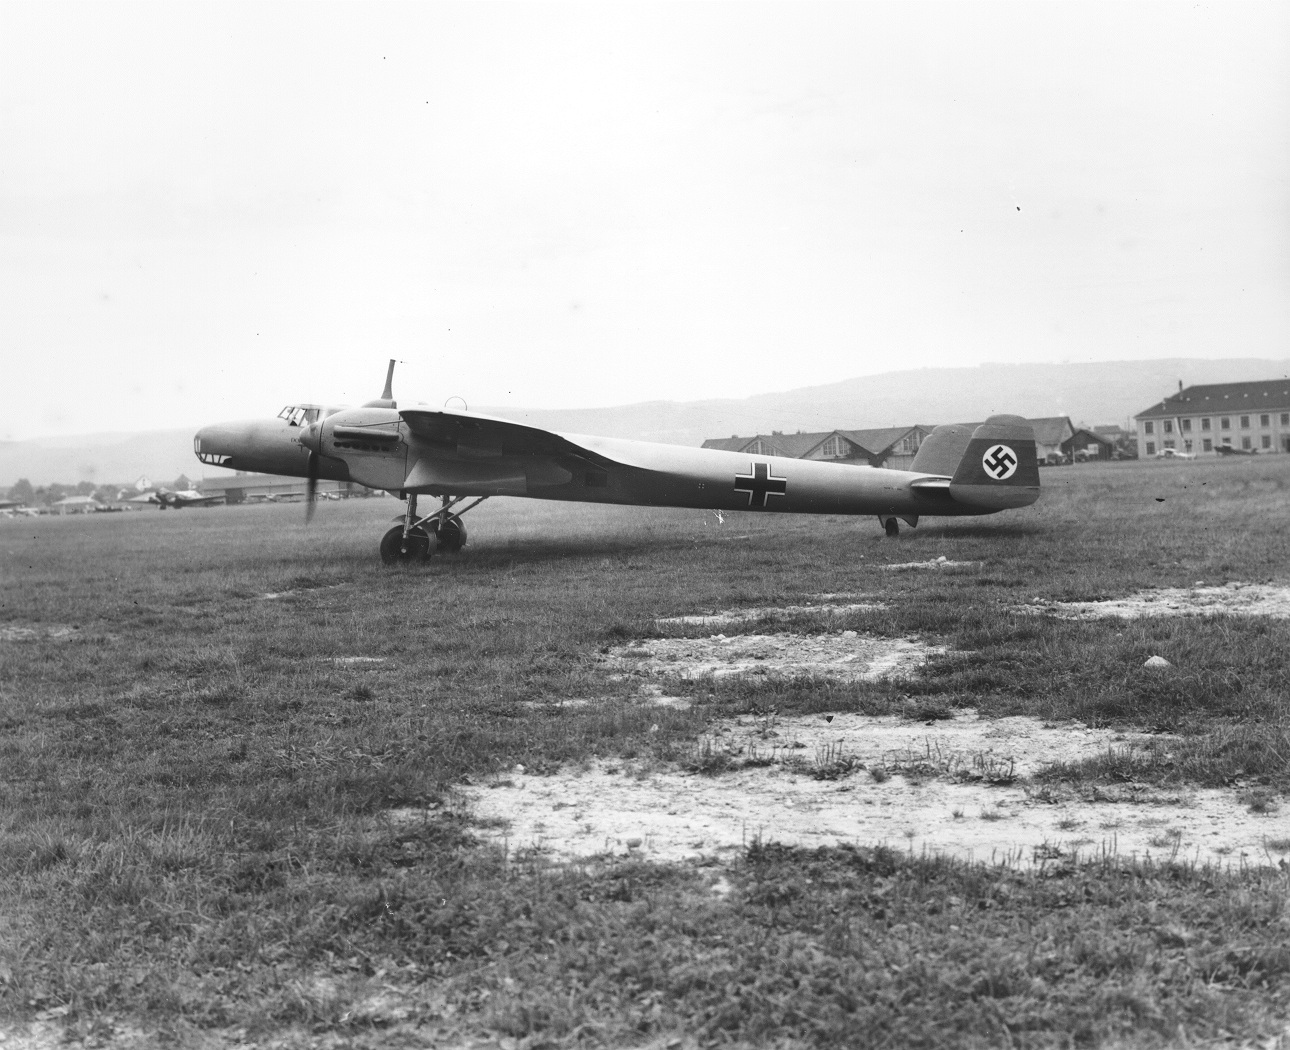 The Dornier 17 was first seen in public at Zurich in 1937 (RAF Museum Copyright)